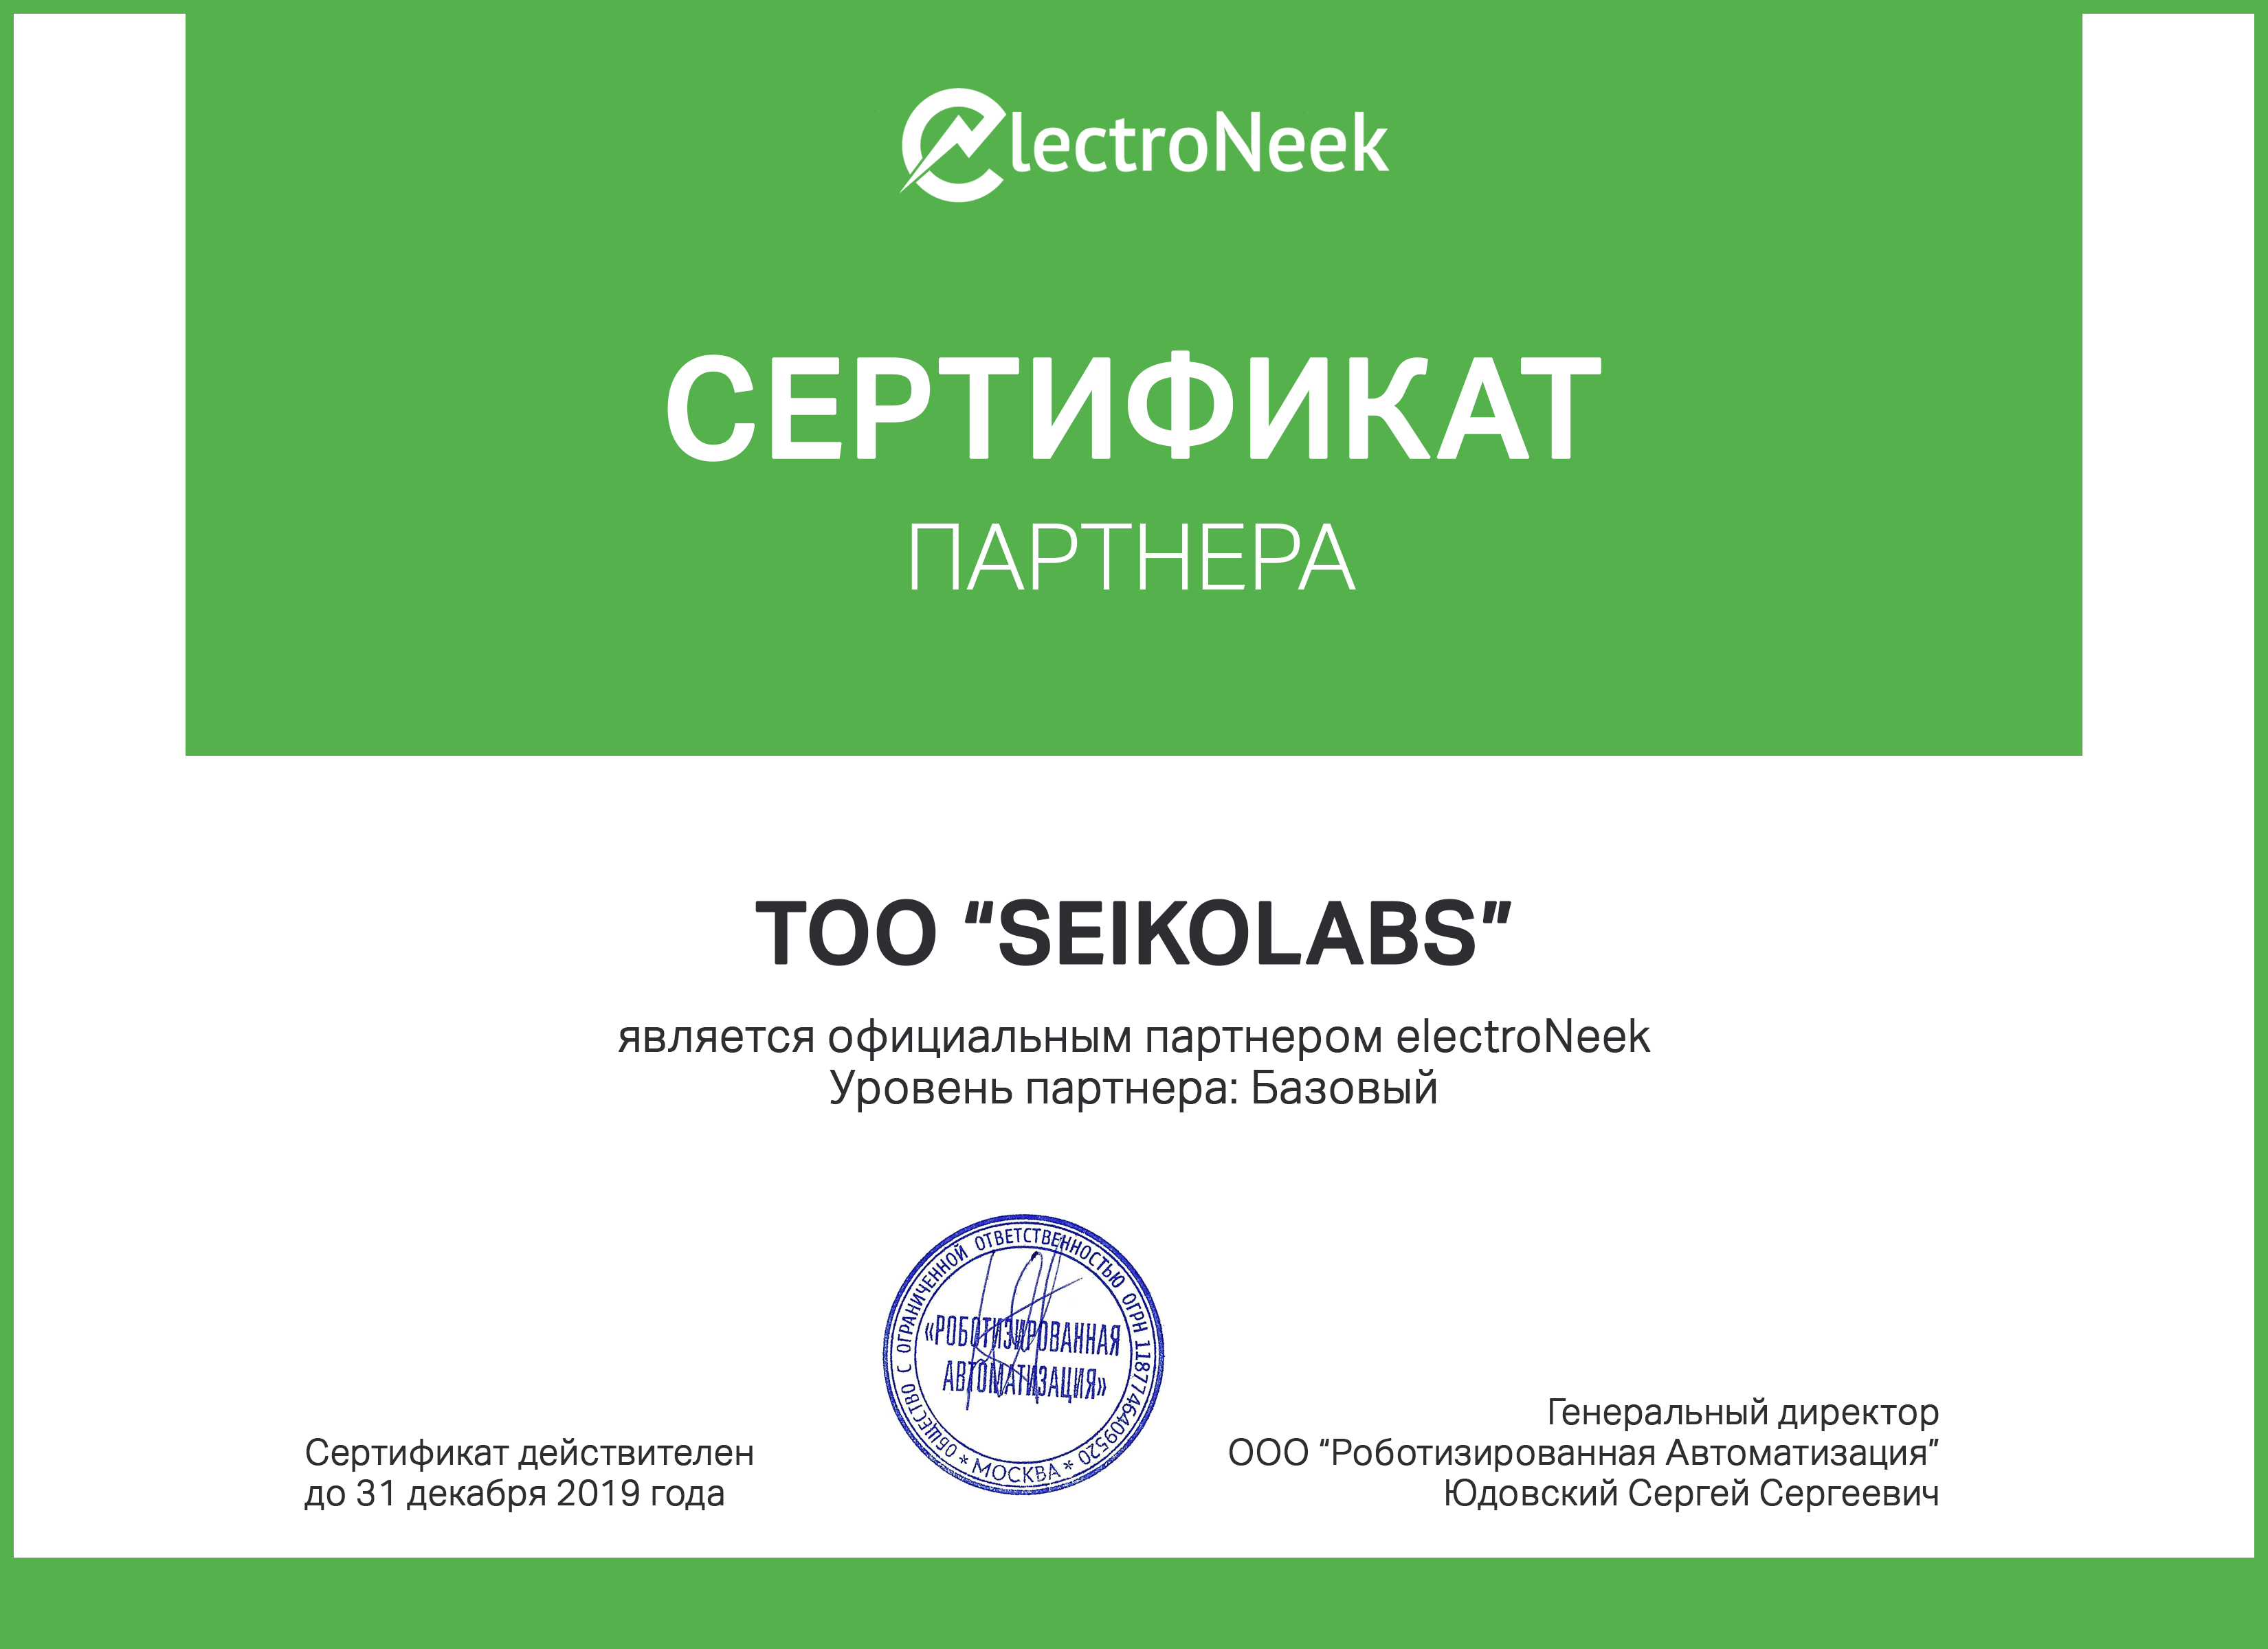 electroneek_partnership